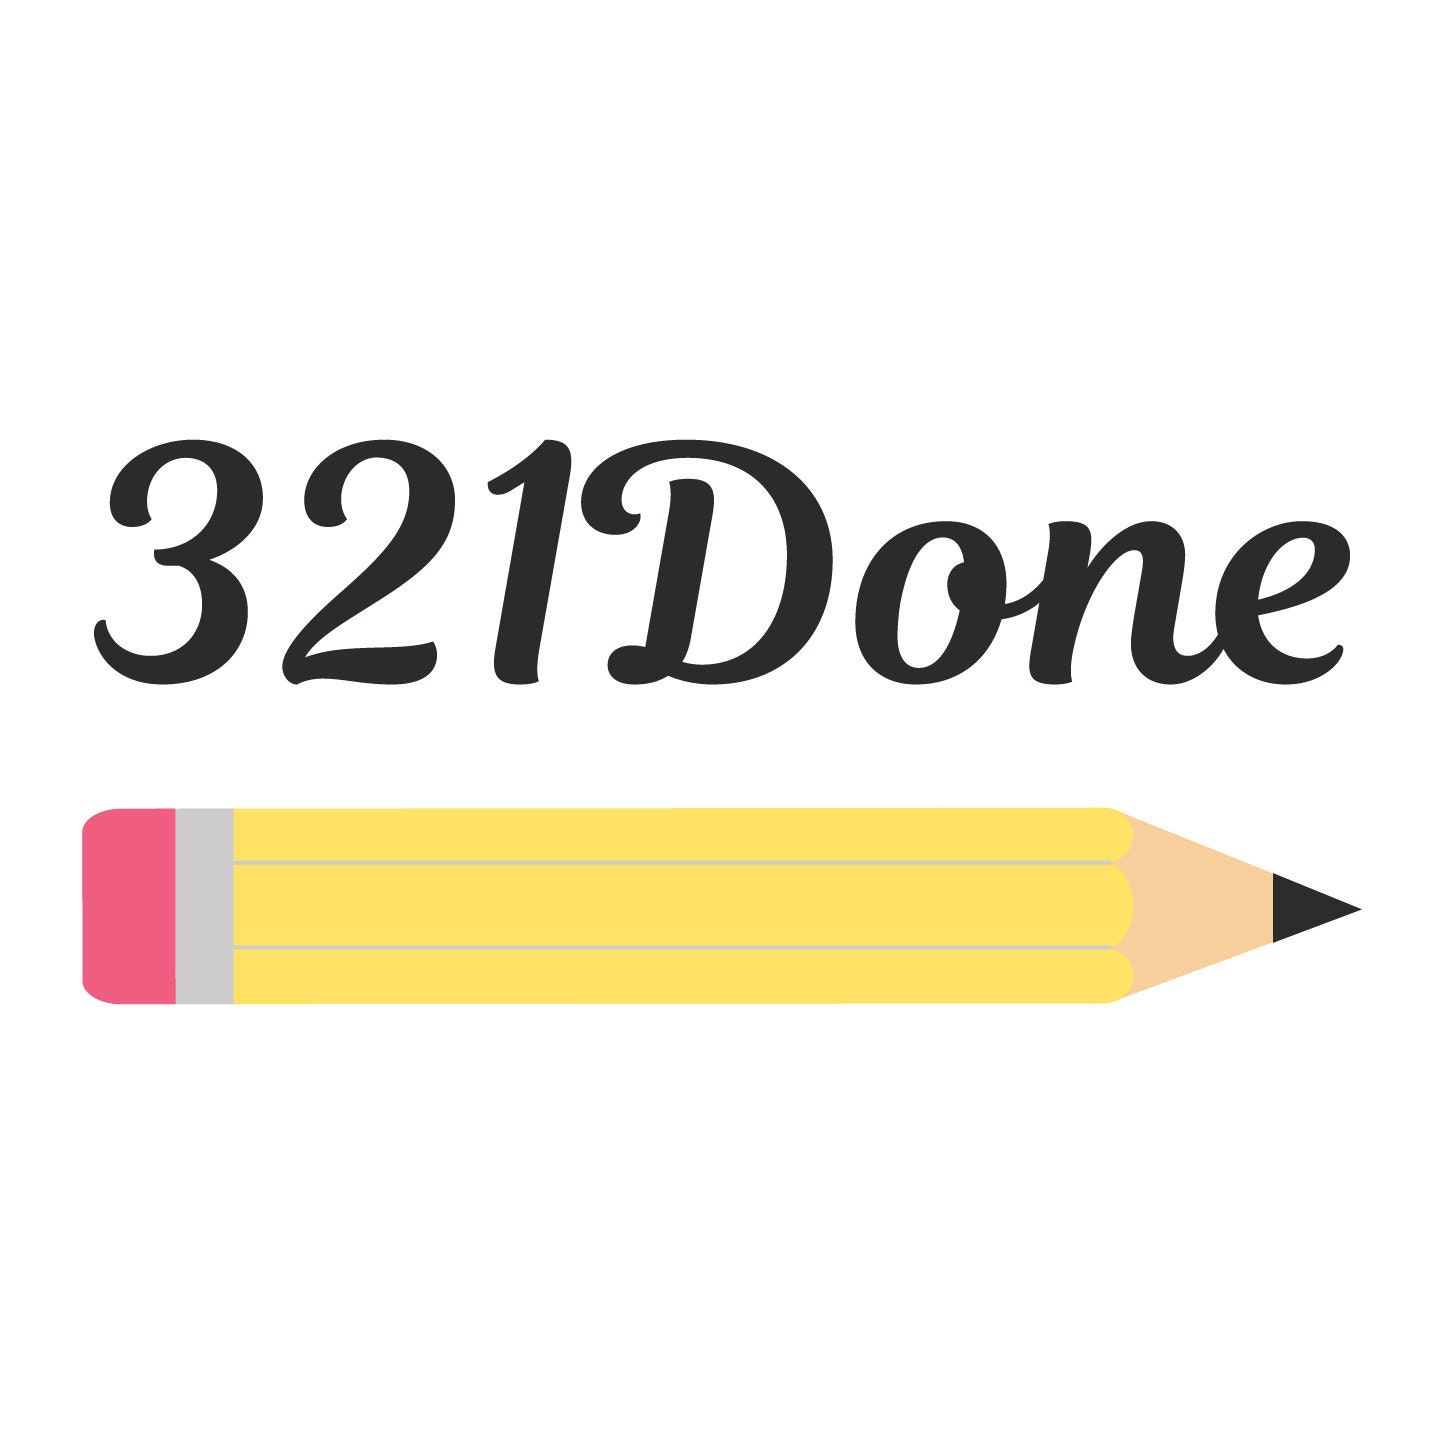 Directsales321done